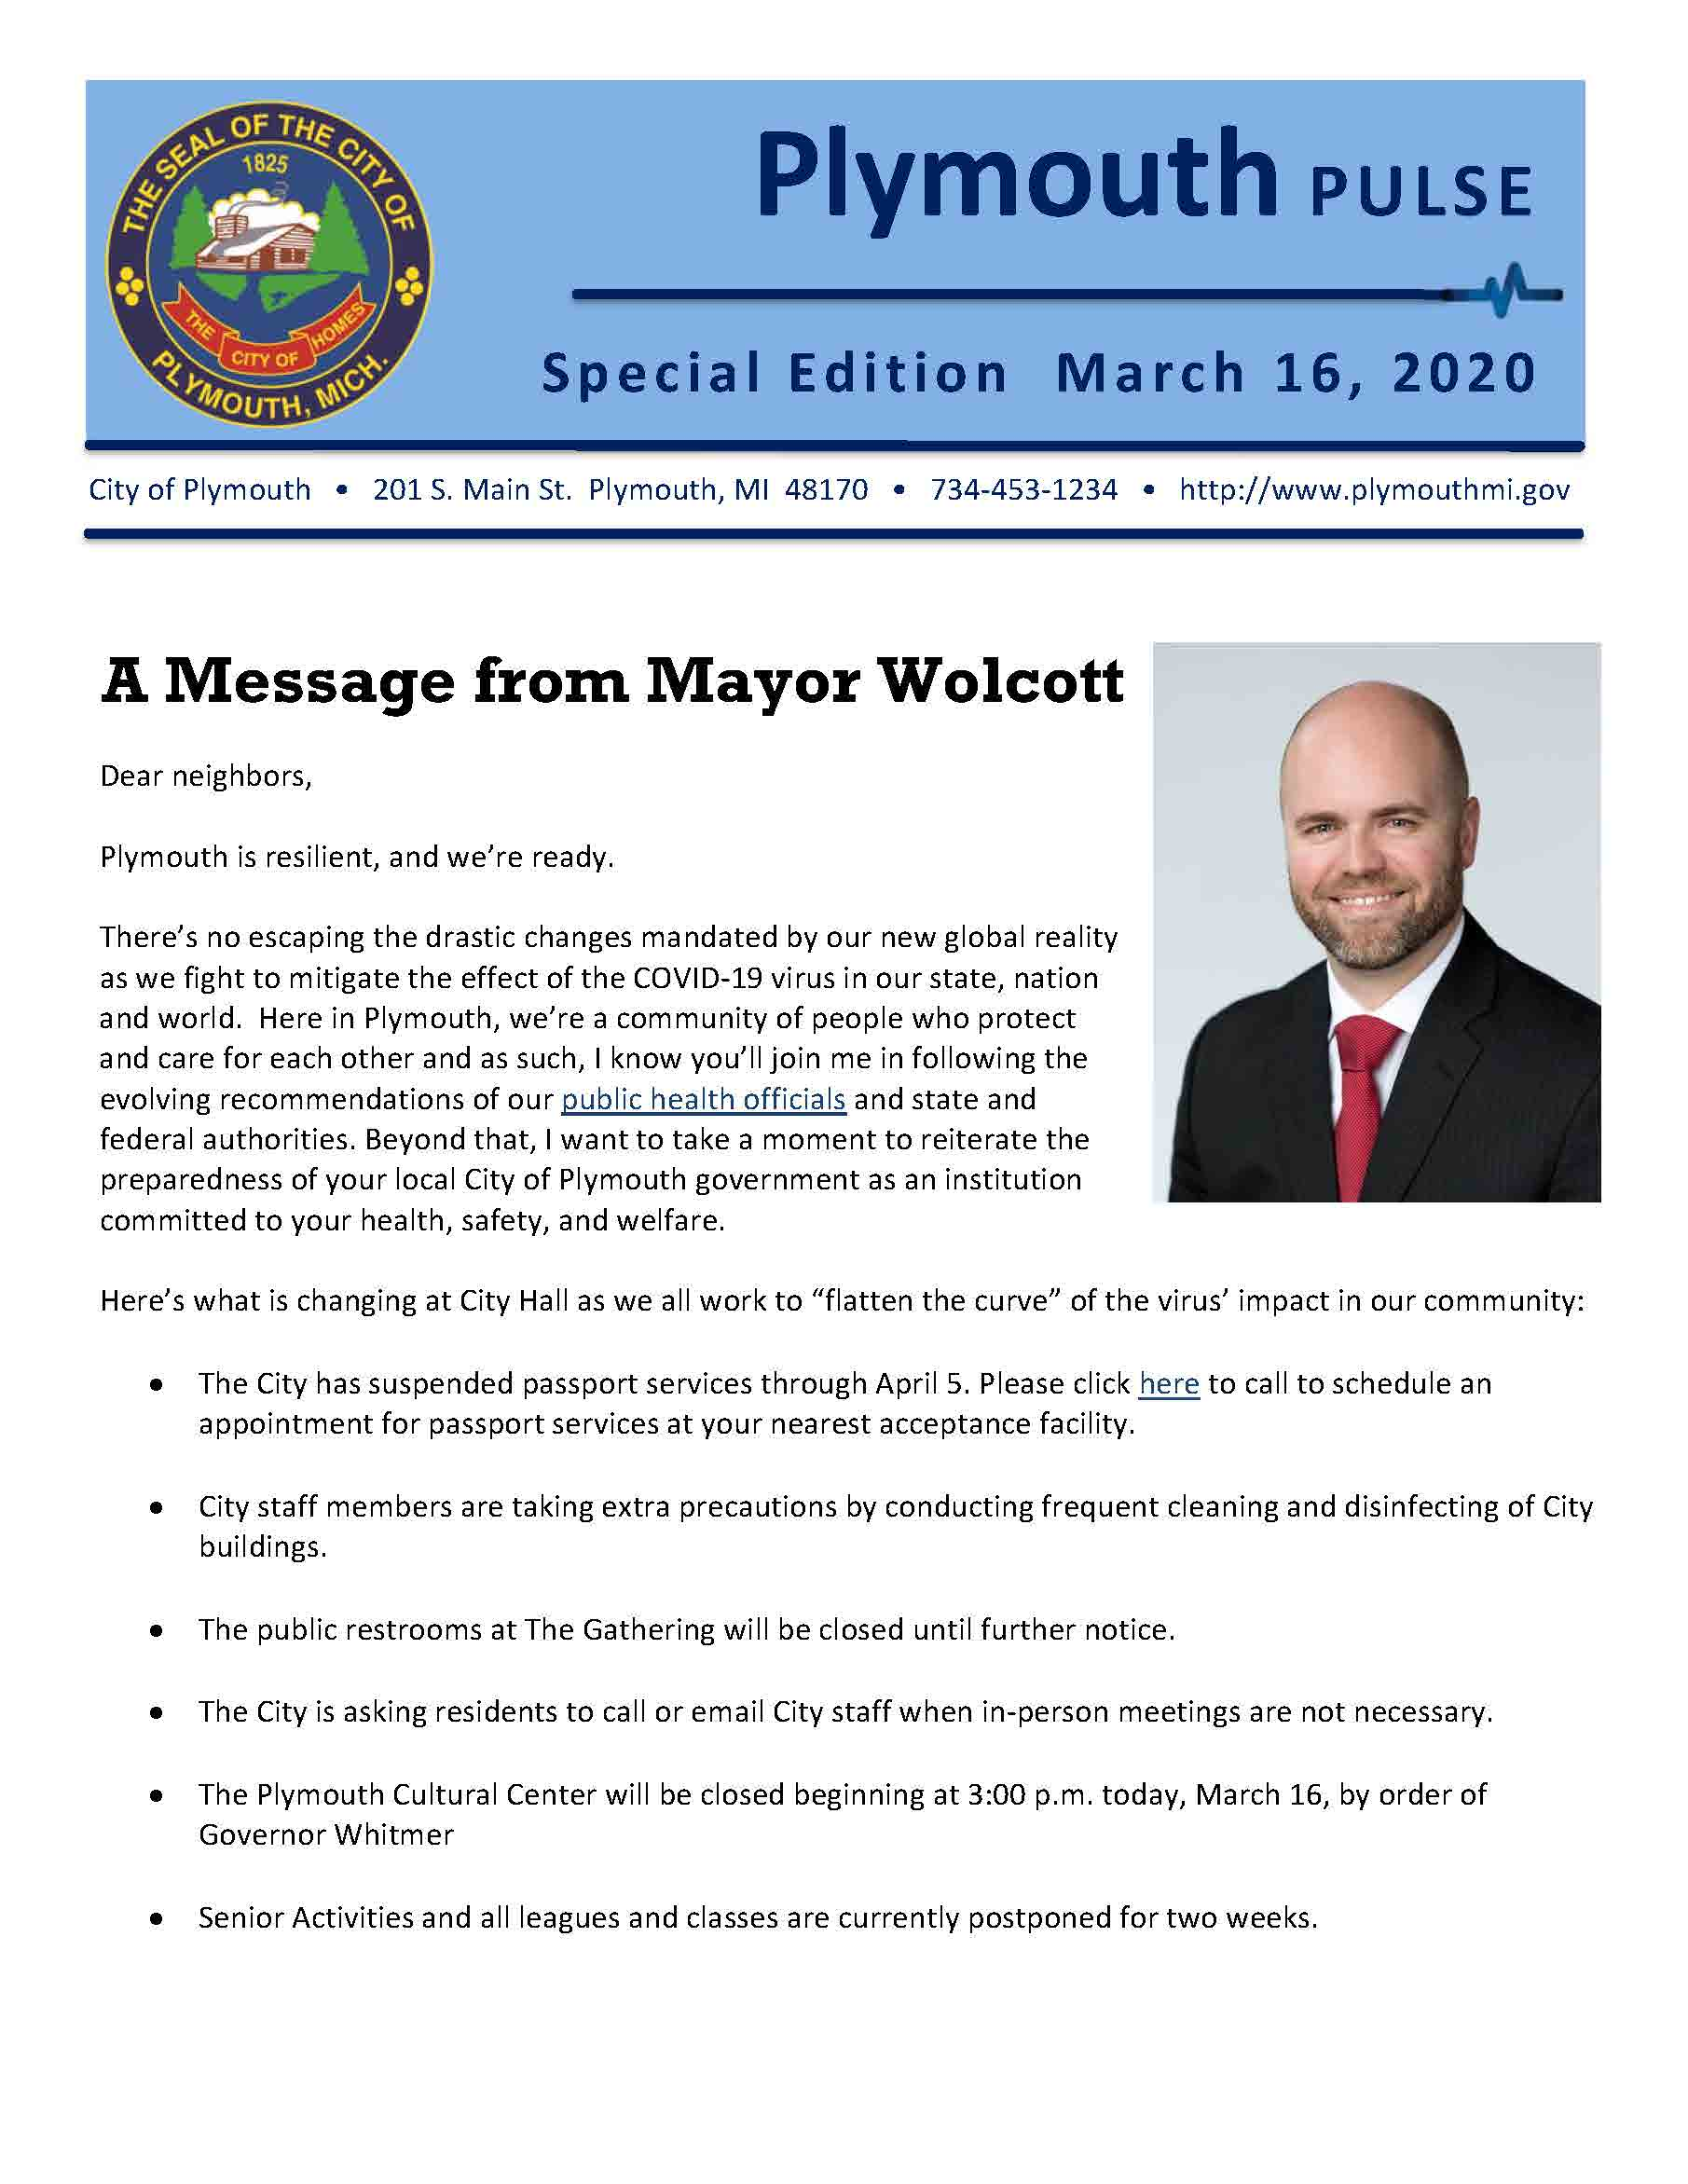 Plymouth Pulse_ Mayor_s message